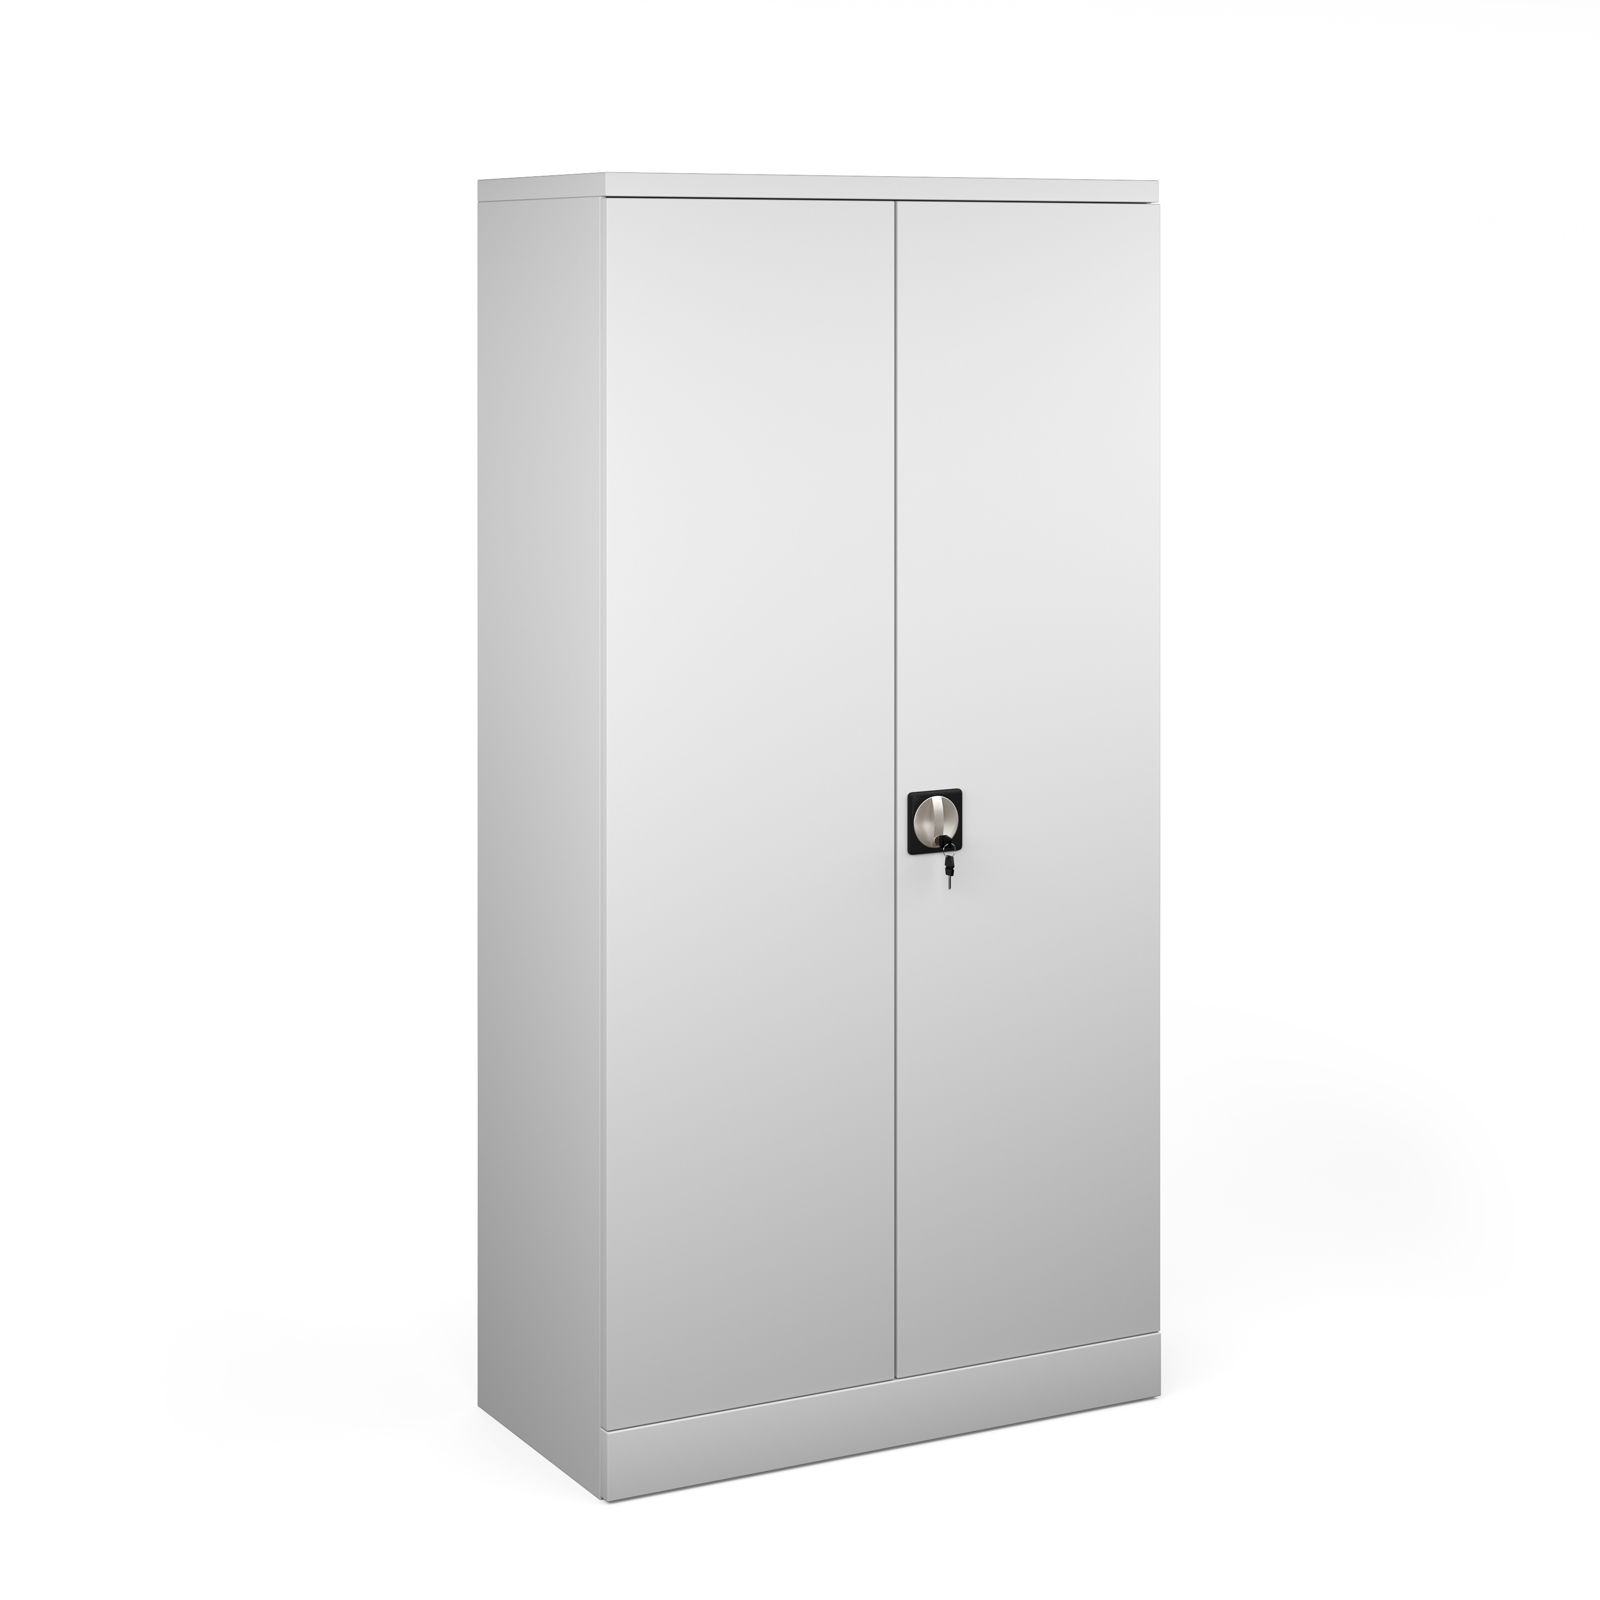 Cupboards / Lockers & Accessories Steel contract cupboard with 3 shelves 1830mm high - light grey